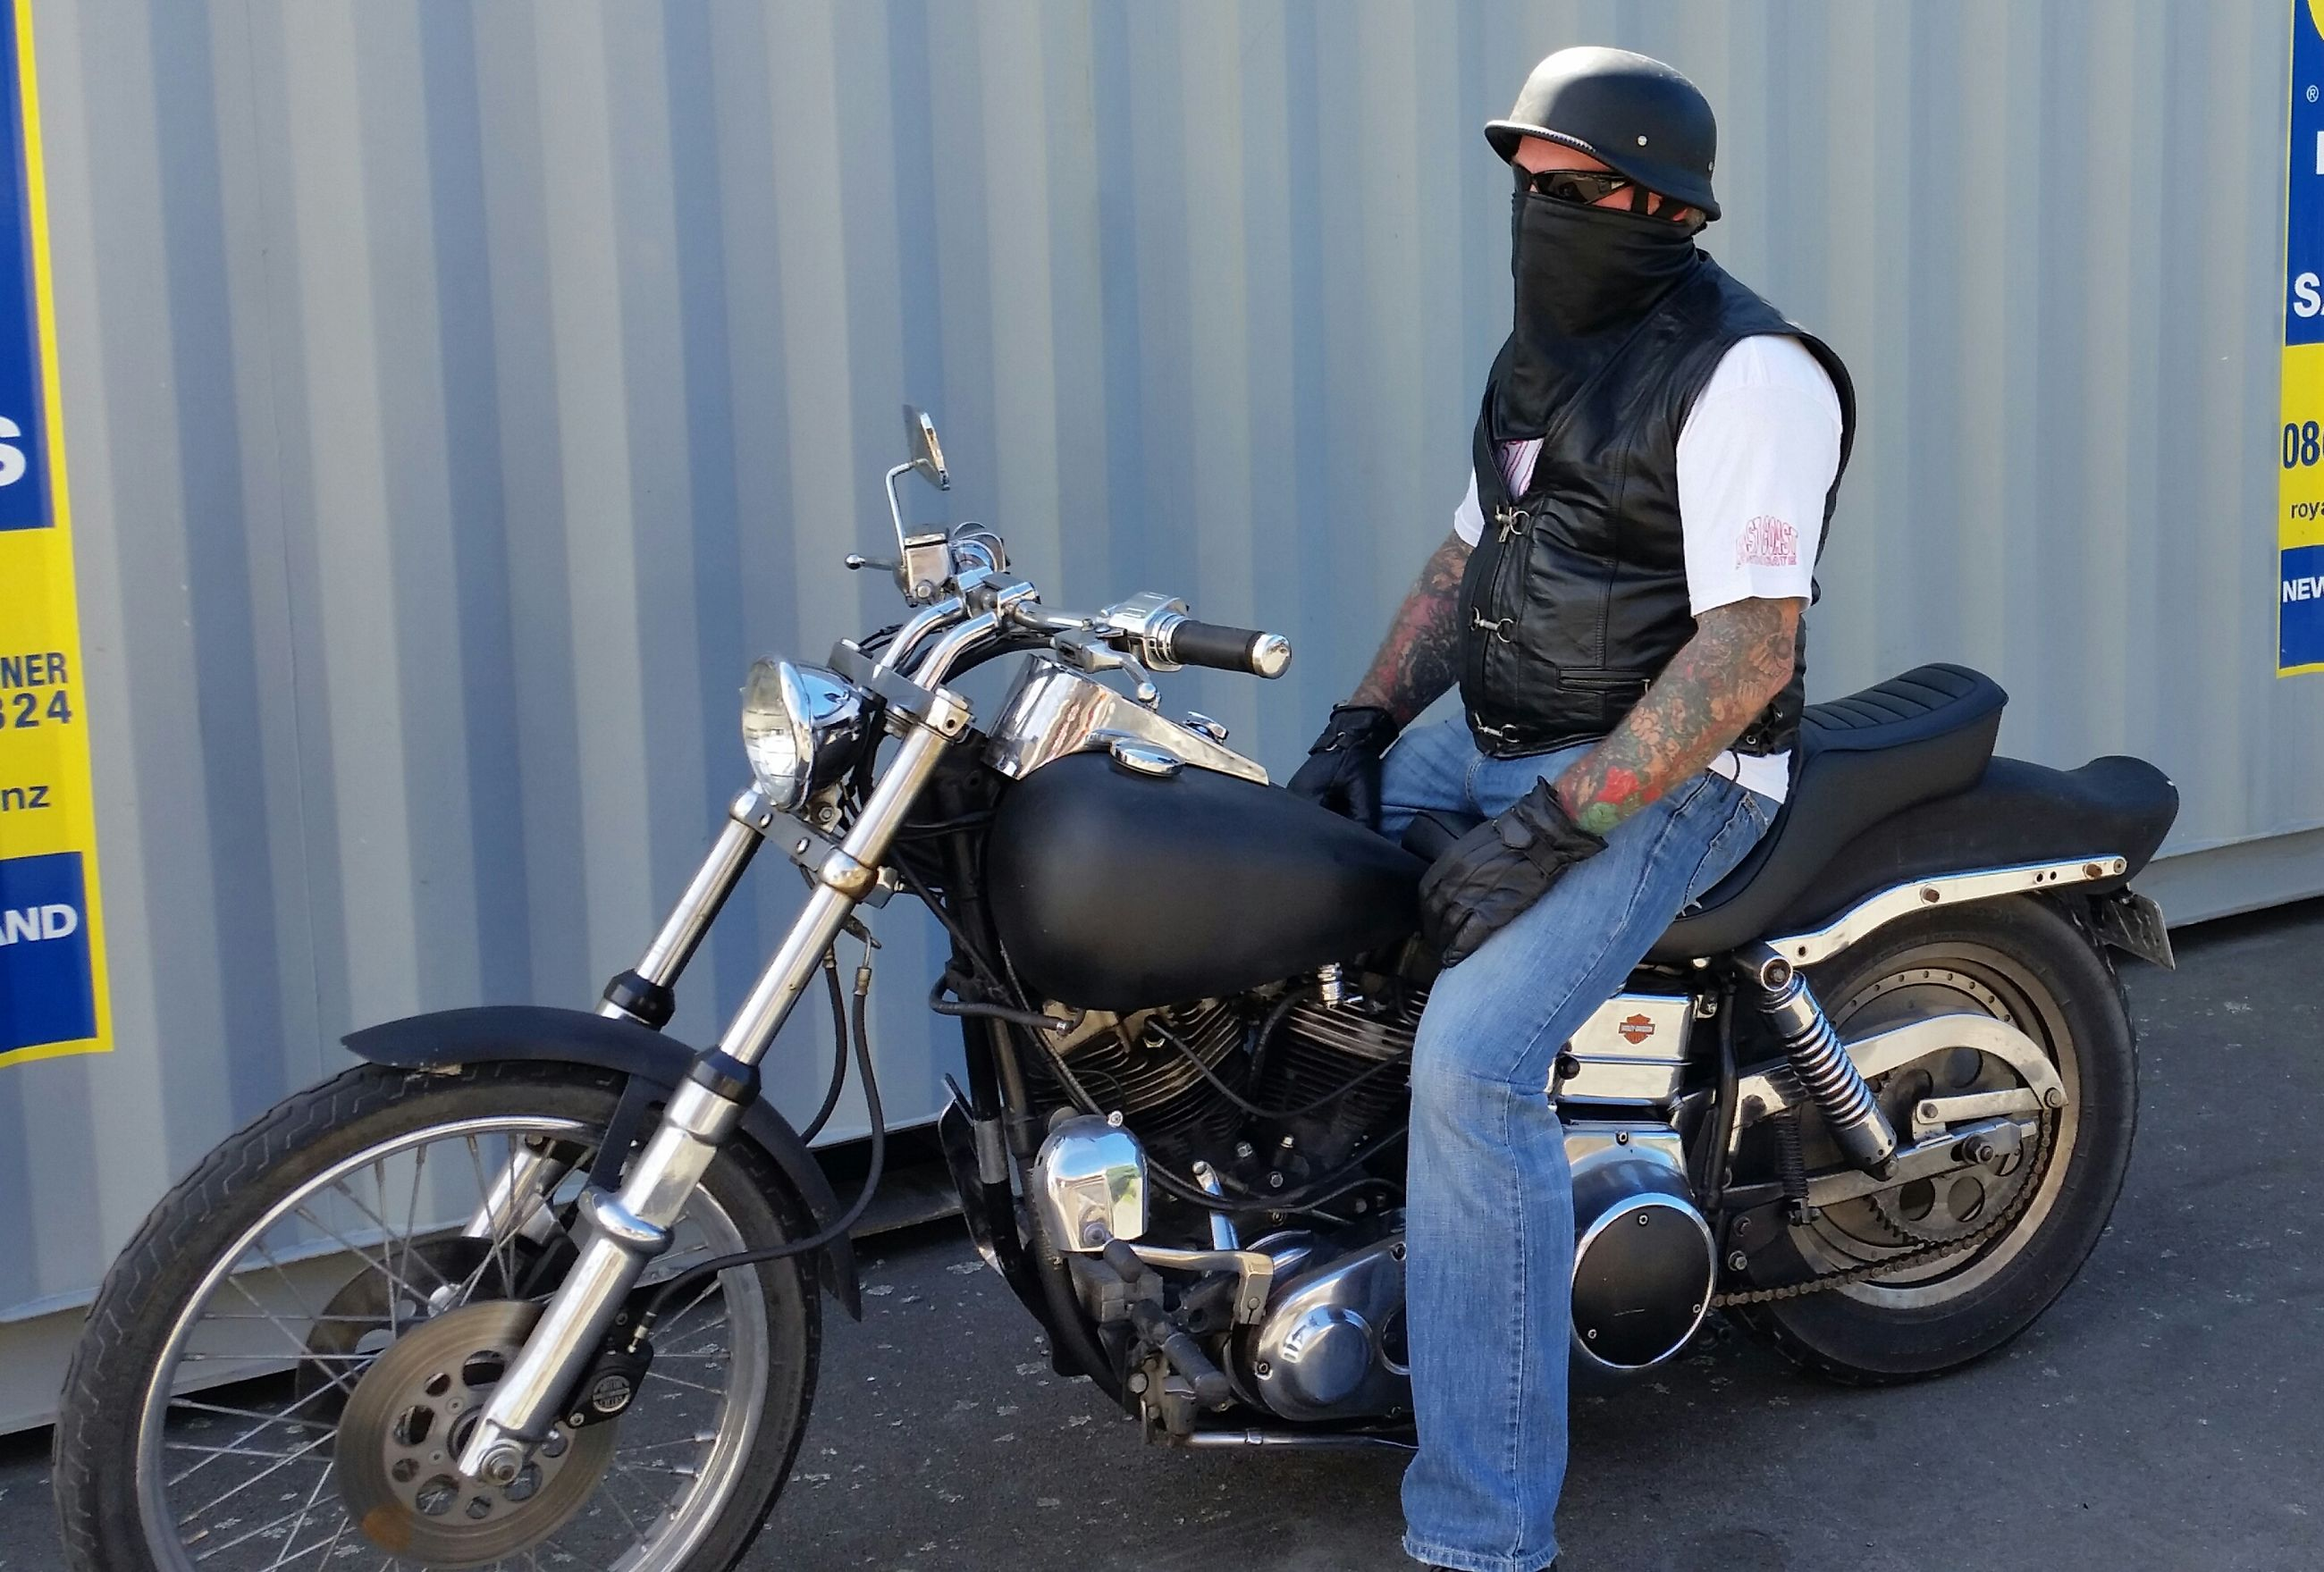 motorcycle, transportation, one person, mode of transport, biker, adults only, one man only, outdoors, stationary, only men, helmet, day, people, headwear, men, adult